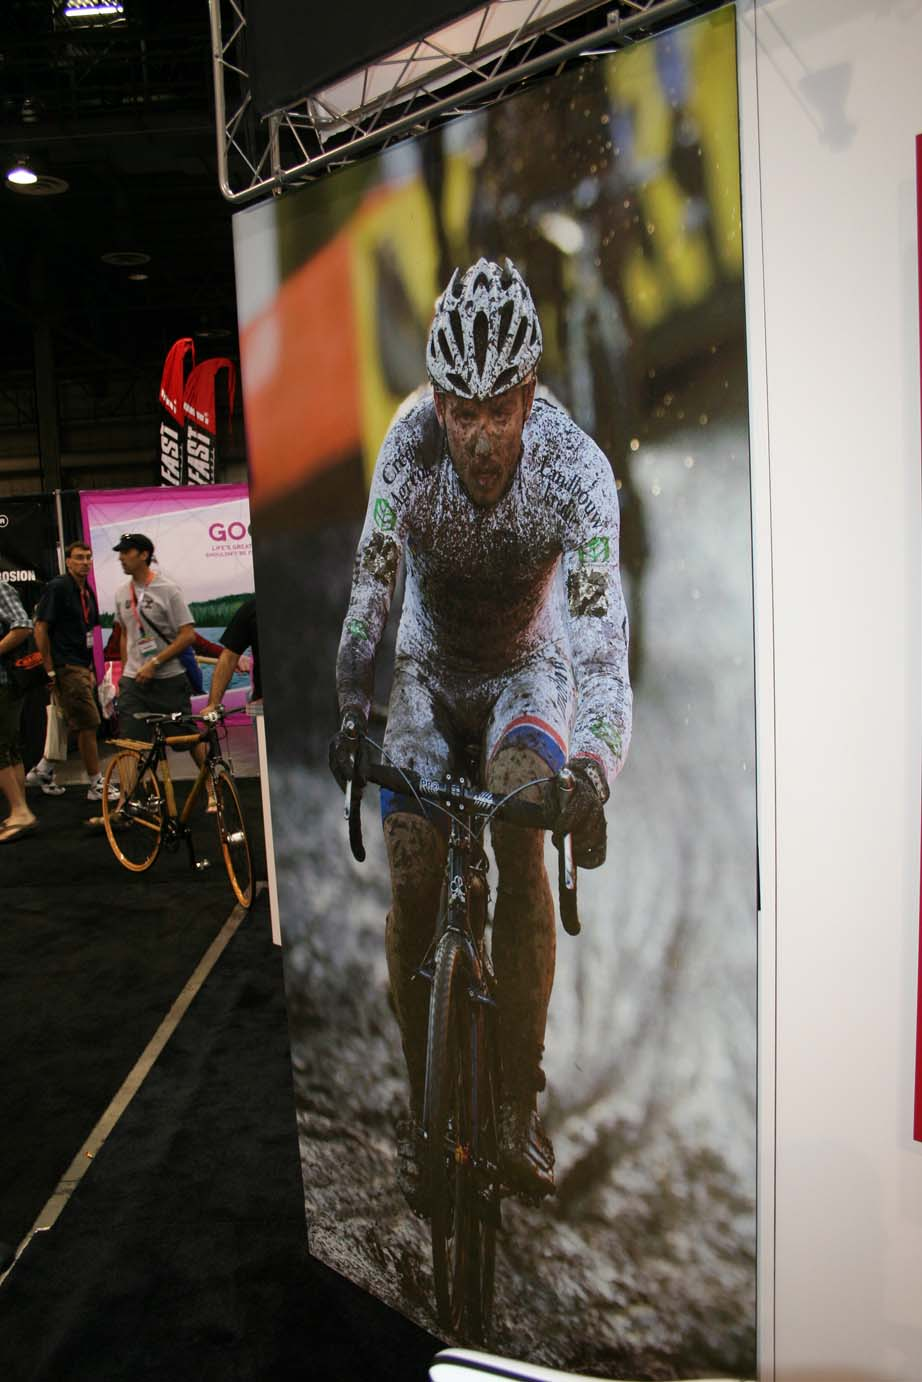 Perhaps one day he\'ll visit Interbike and CrossVegas, but for no